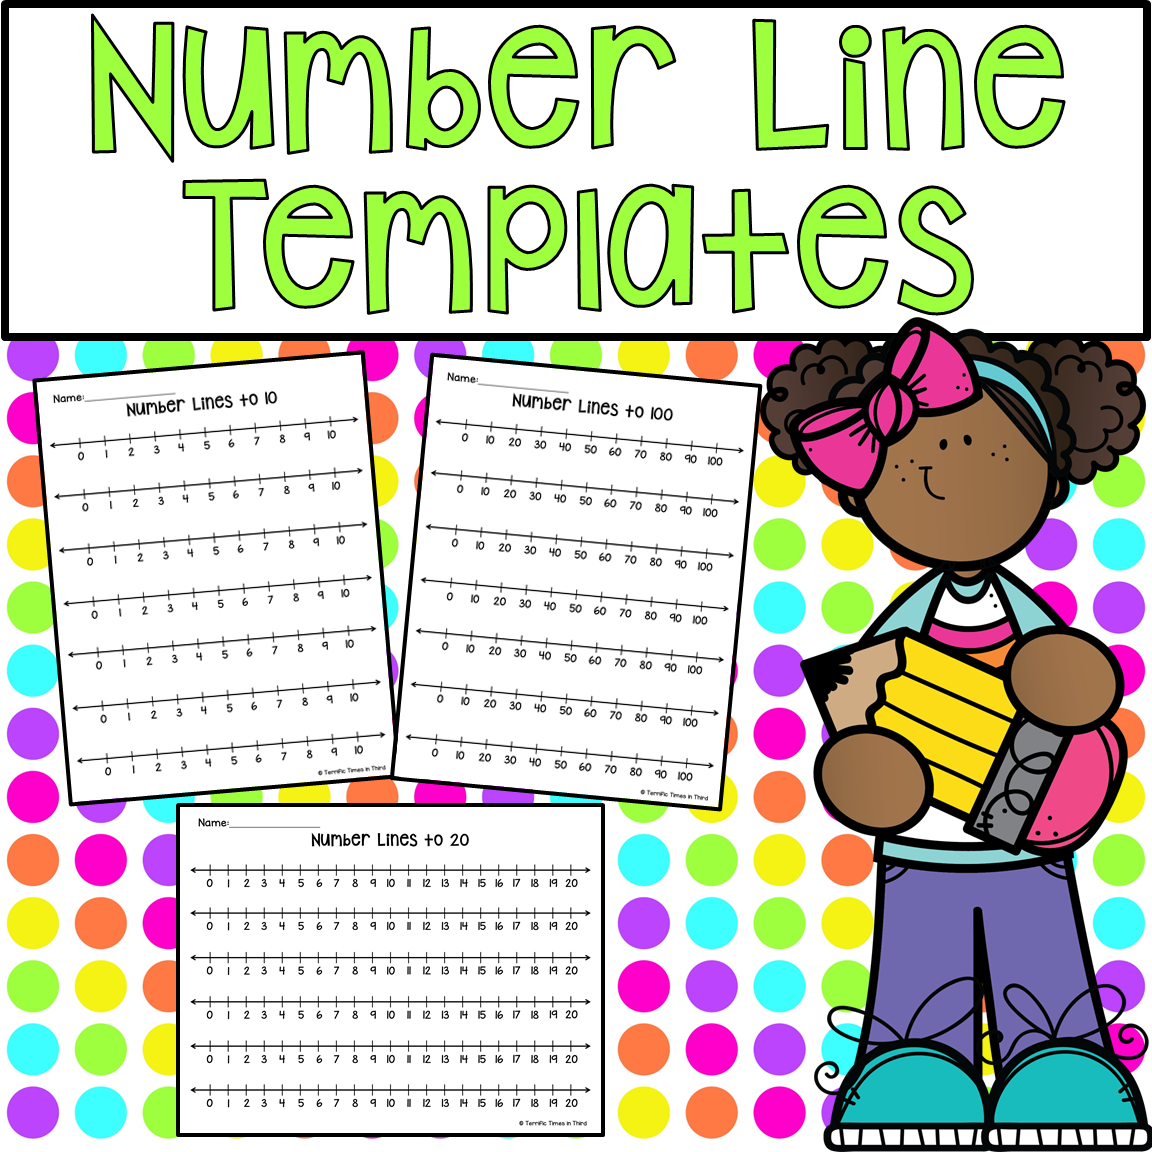 Number Line Templates With Images